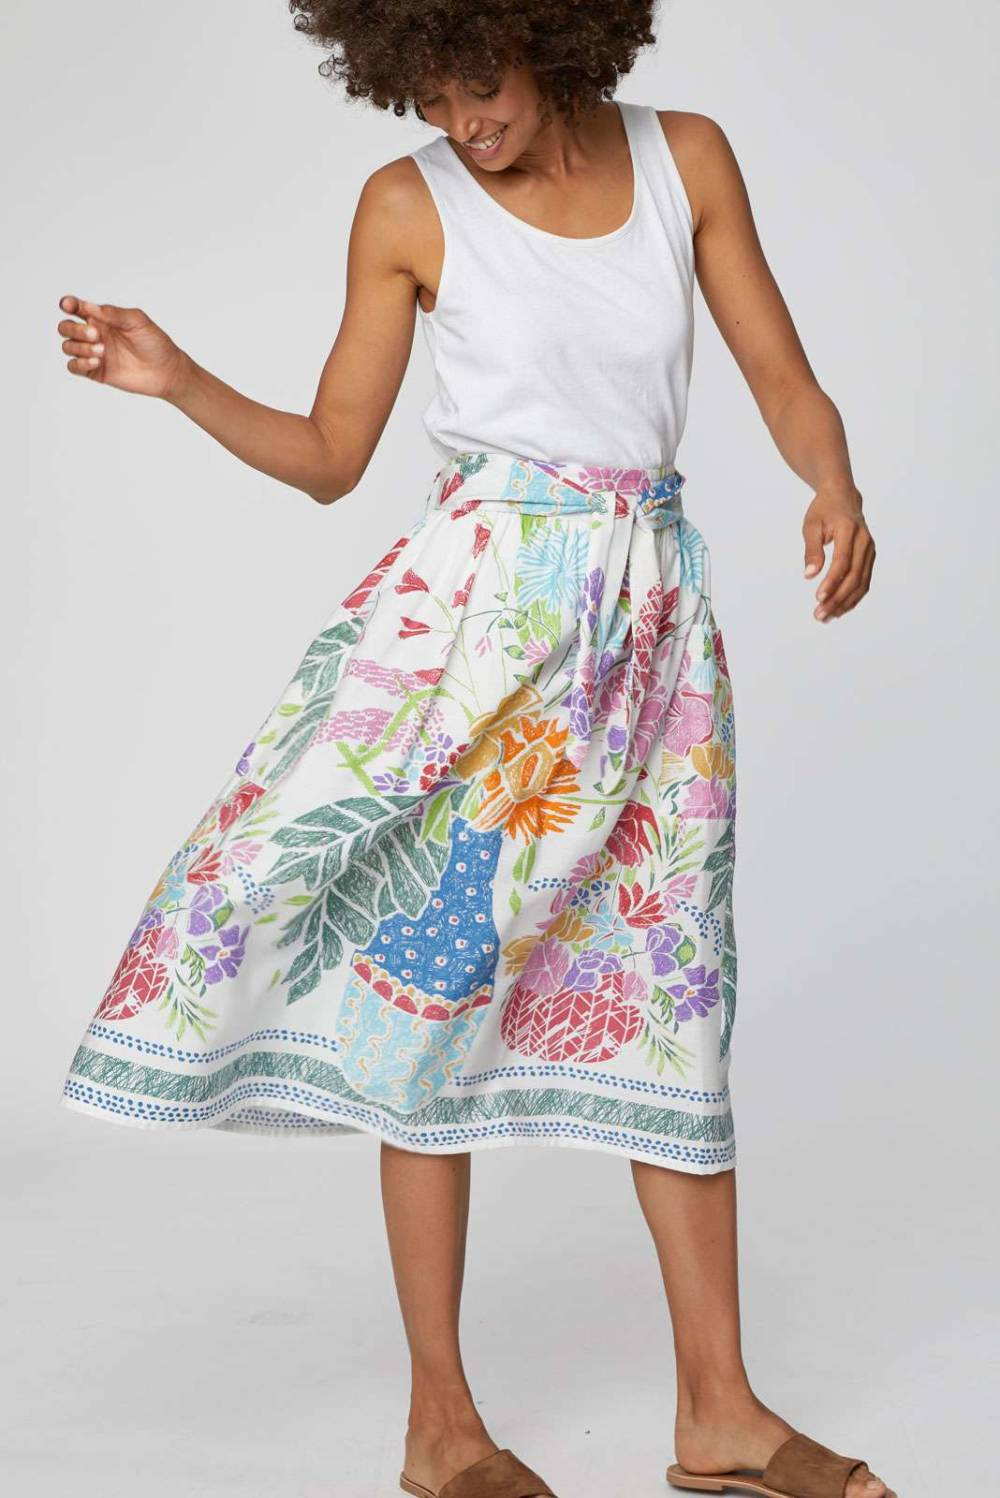 Vases Skirt Thought Clothing Katie Kerr Women's Clothing